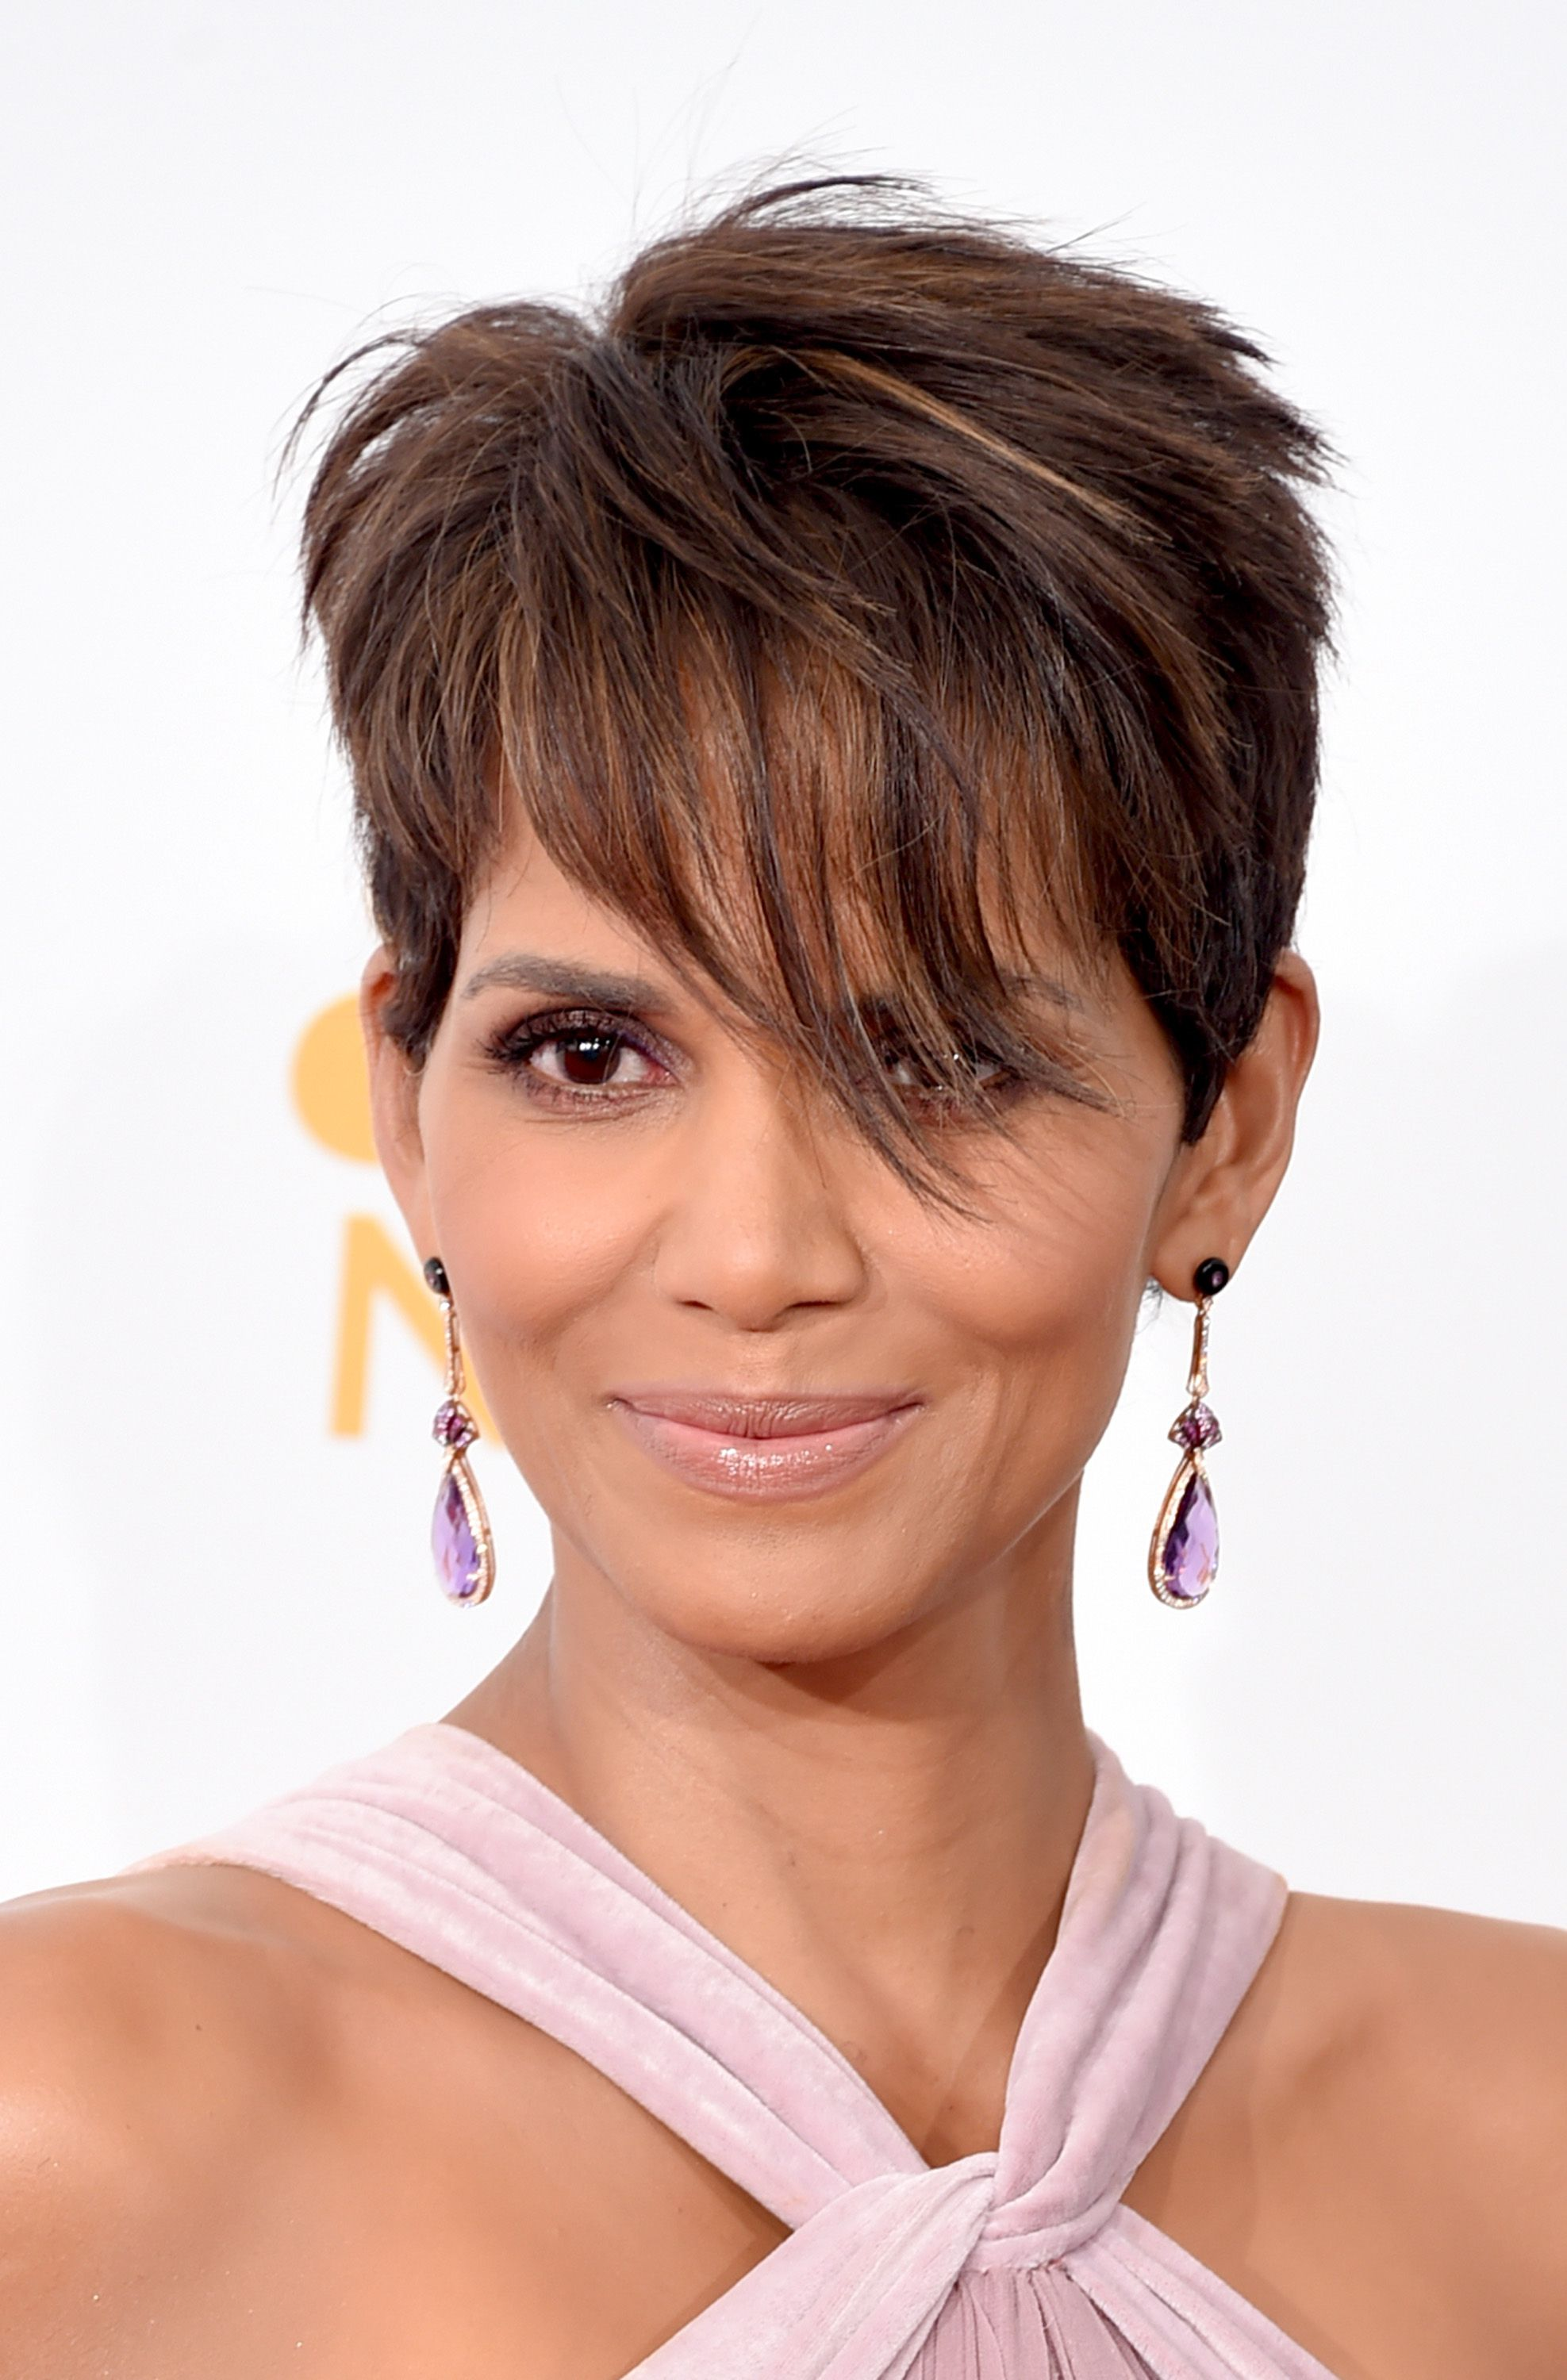 8 Classic and Cool Short Hairstyles for Older Women